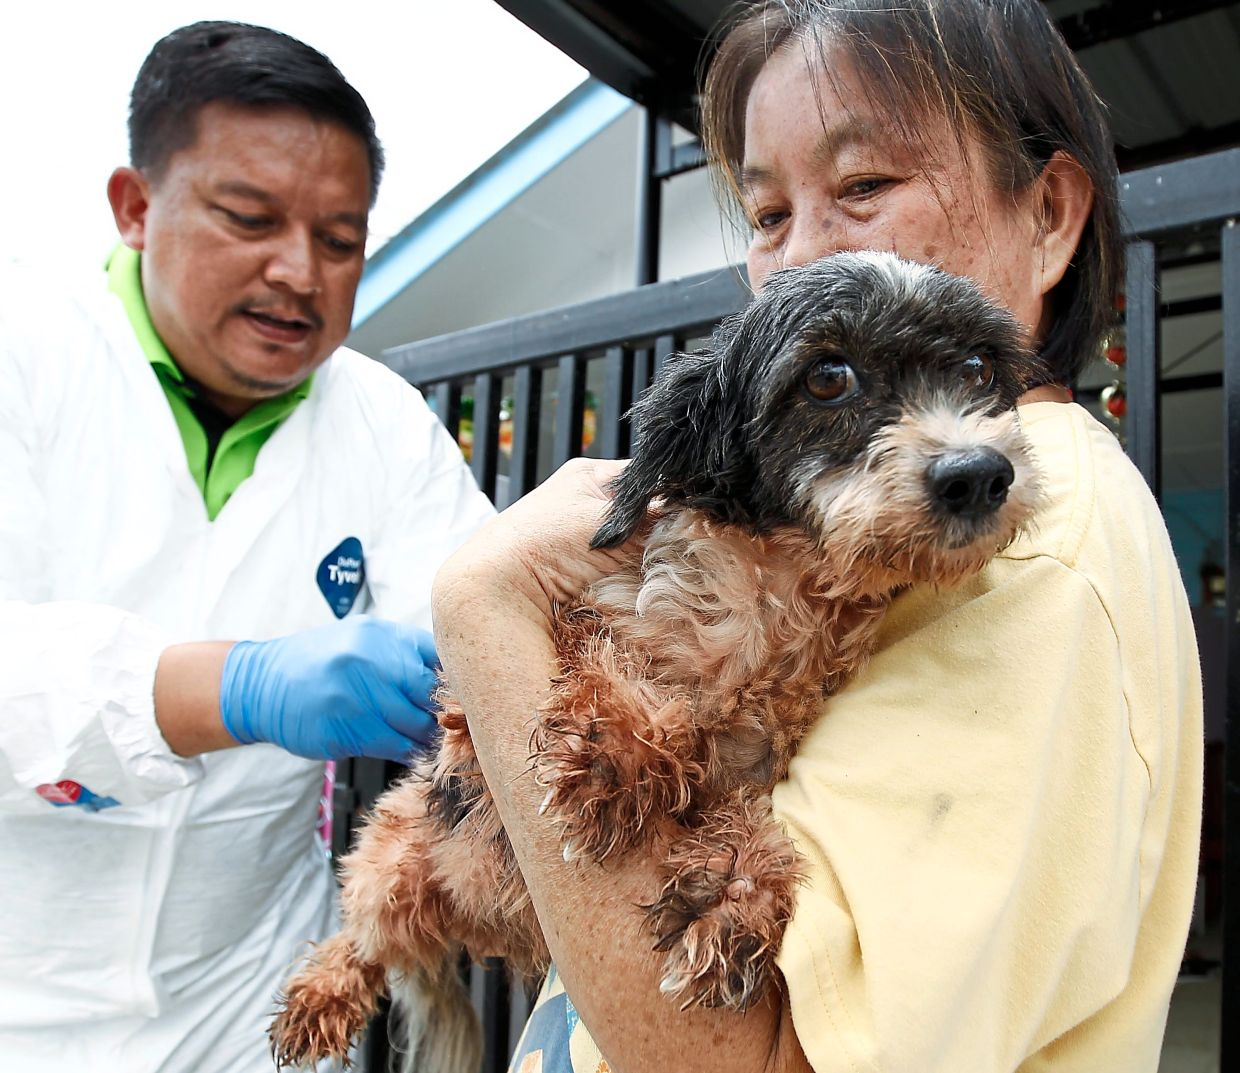 A pet dog gets vaccinated against rabies in Kuching in this 2017 filepic, when the rabies outbreak in the state of Sarawak first began. The rabies virus can pass from an infected animal to a human through its saliva, usually via a bite.